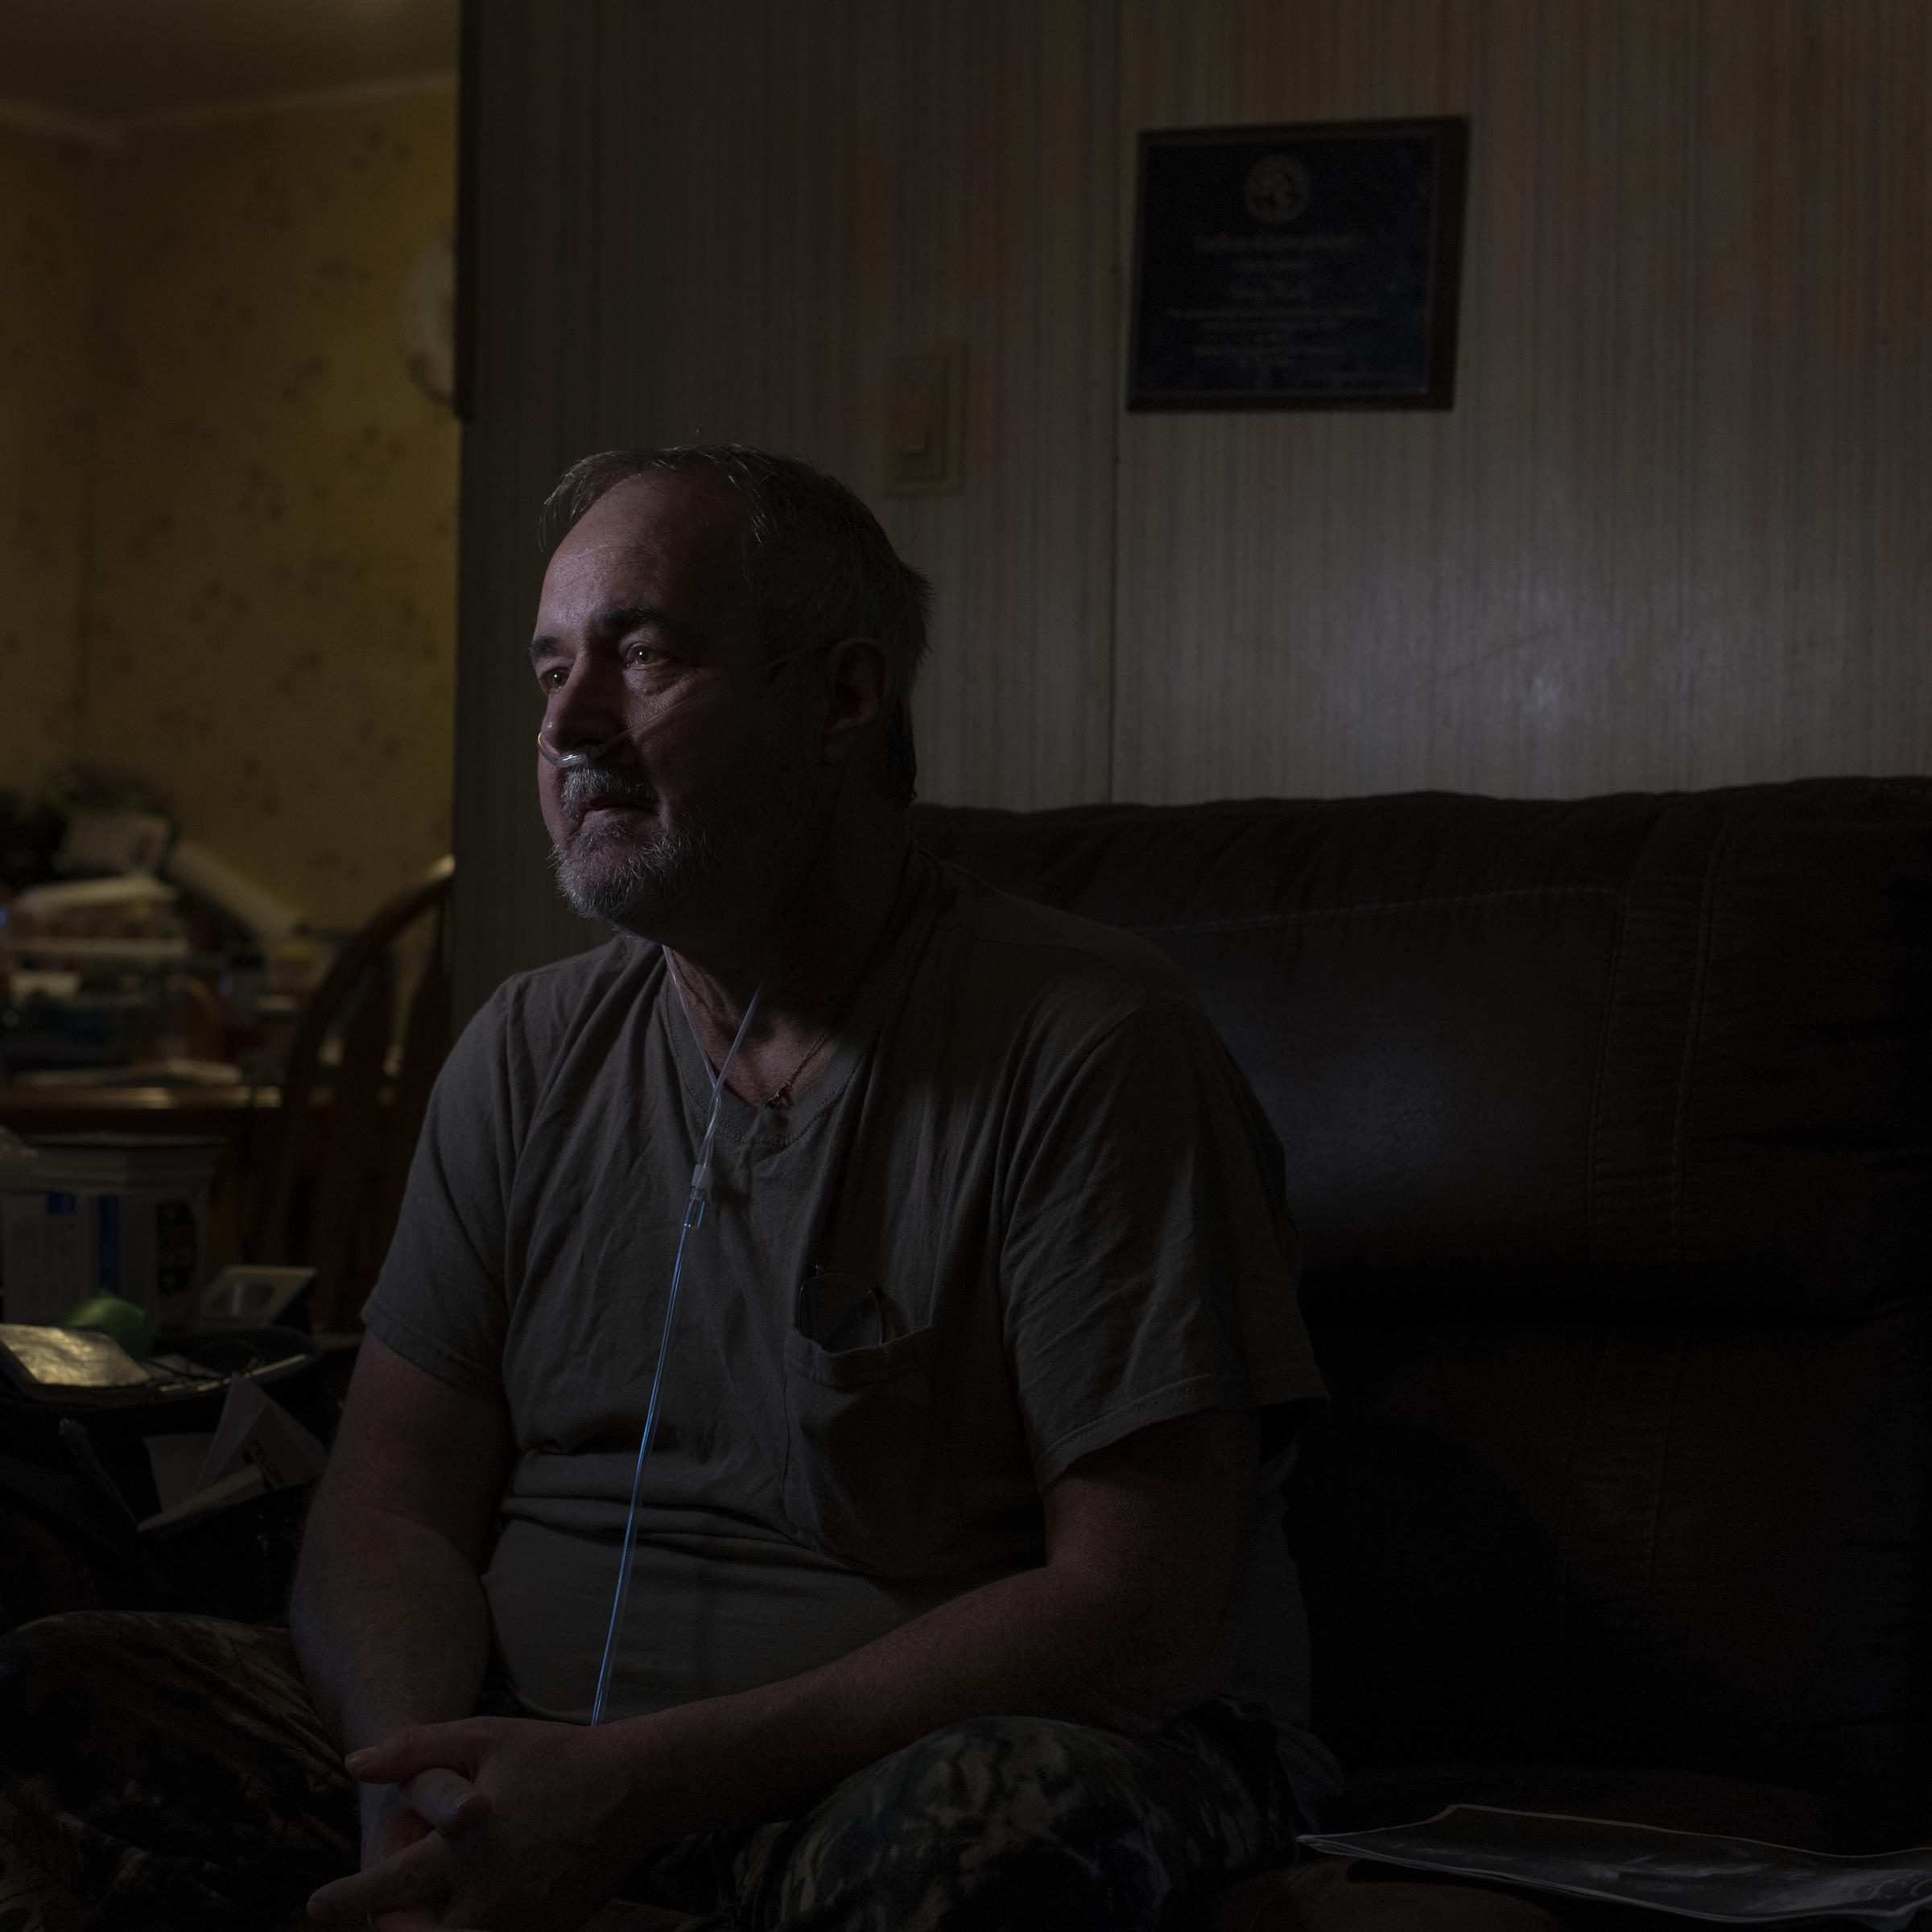 a92771d6b Greg Kelly at home in Delphia, Ky. A former coal miner, Kelly has an  advanced stage of black lung disease known as complicated black lung or  progressive ...